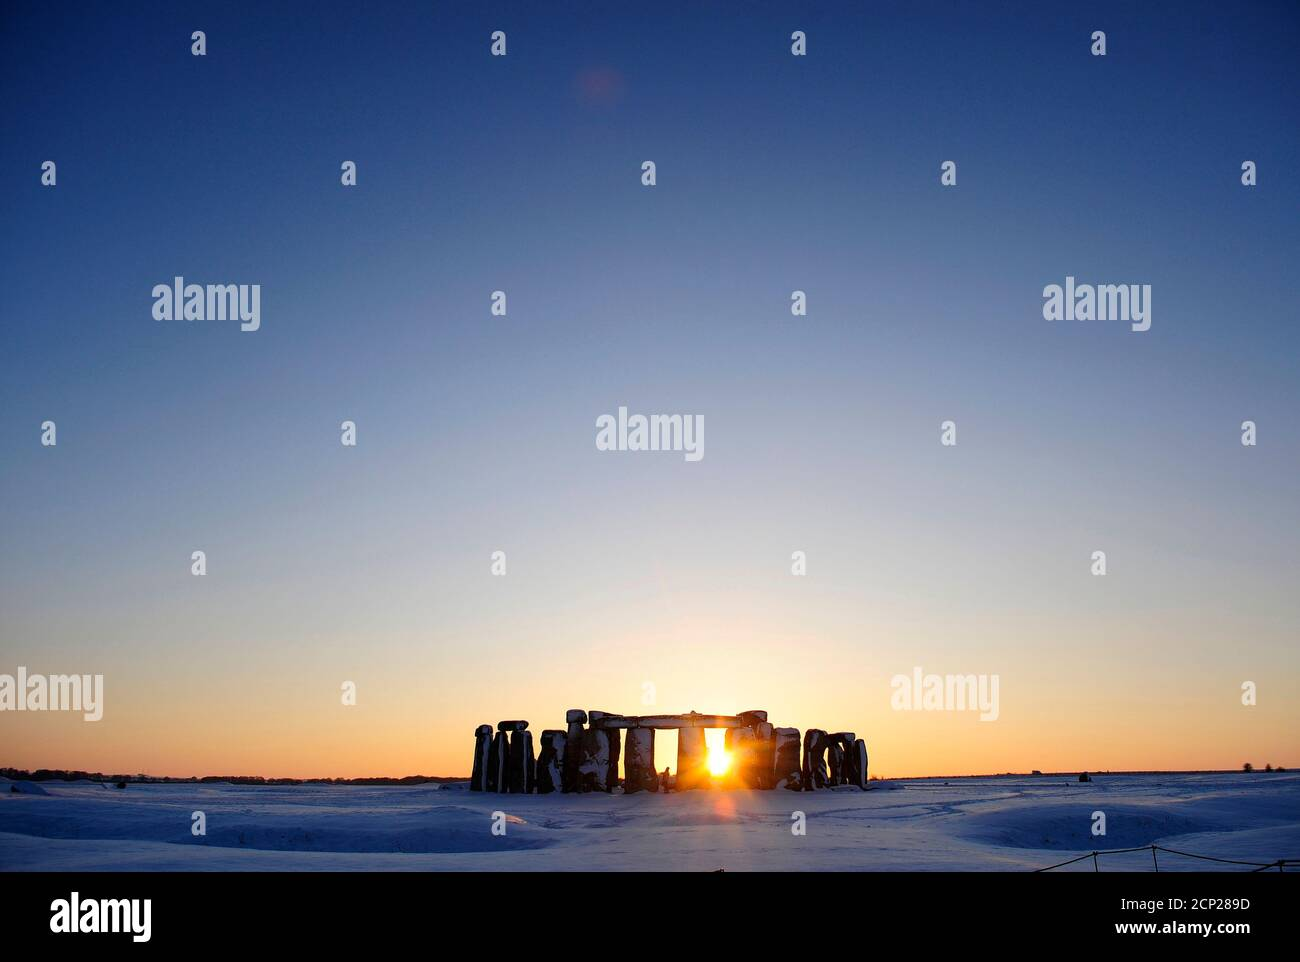 Snow covers the plains surrounding Stonehenge in Wiltshire, southern England January 7, 2010.  REUTERS/Kieran Doherty  (BRITAIN - Tags: SOCIETY IMAGES OF THE DAY TRAVEL ENVIRONMENT) Stock Photo